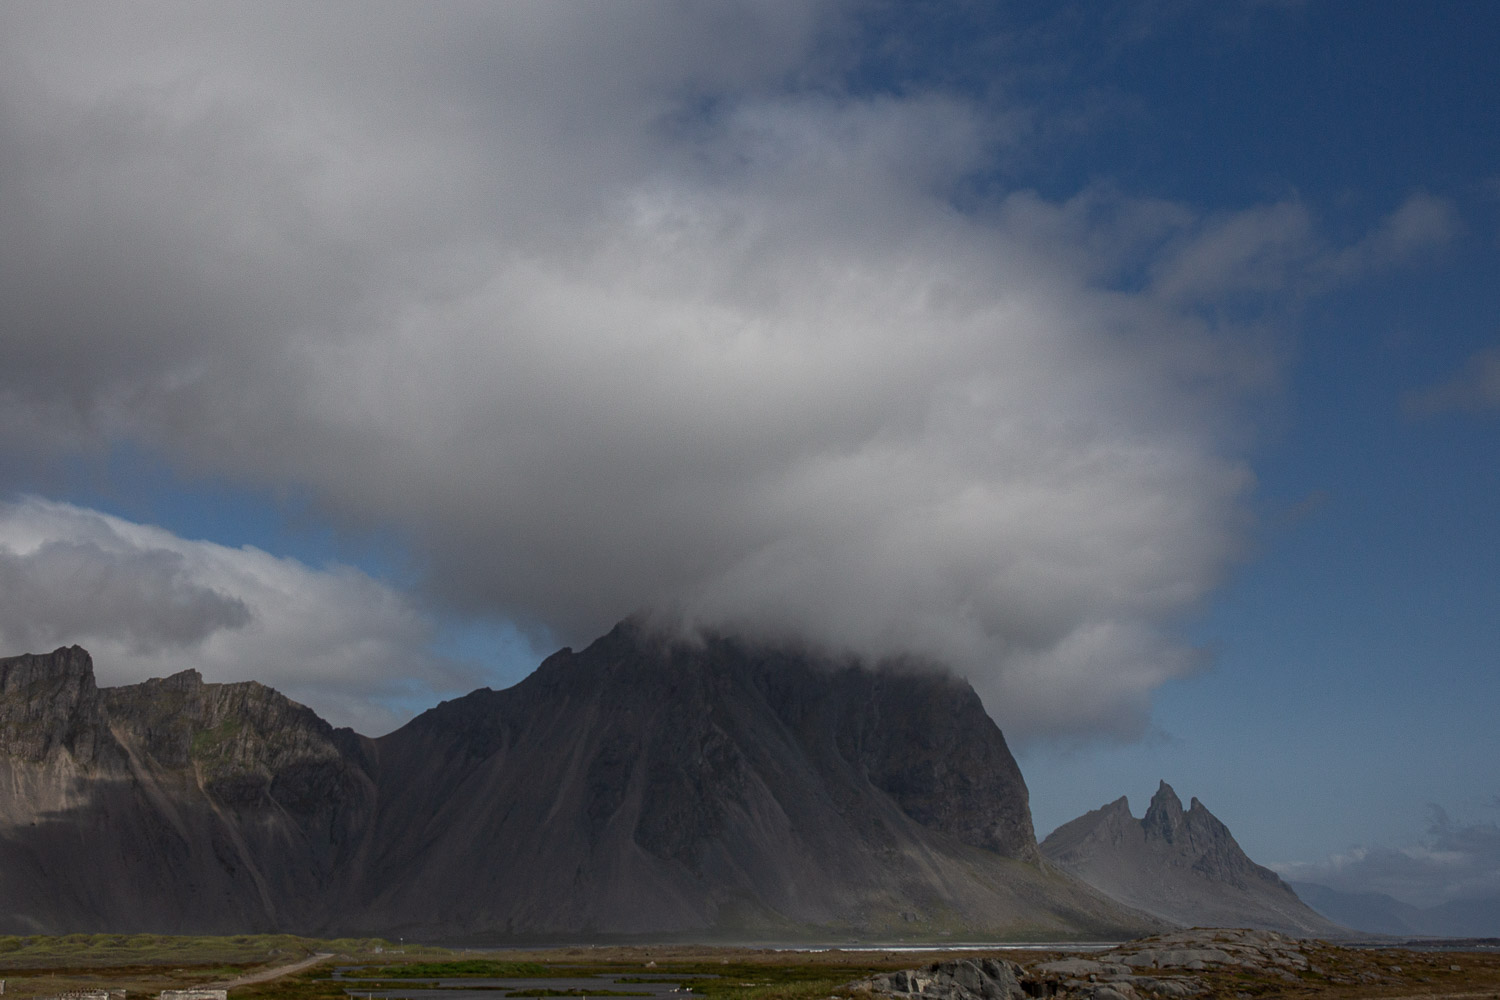 Brunnhorn on the far right peaking out behind Vestrahorn